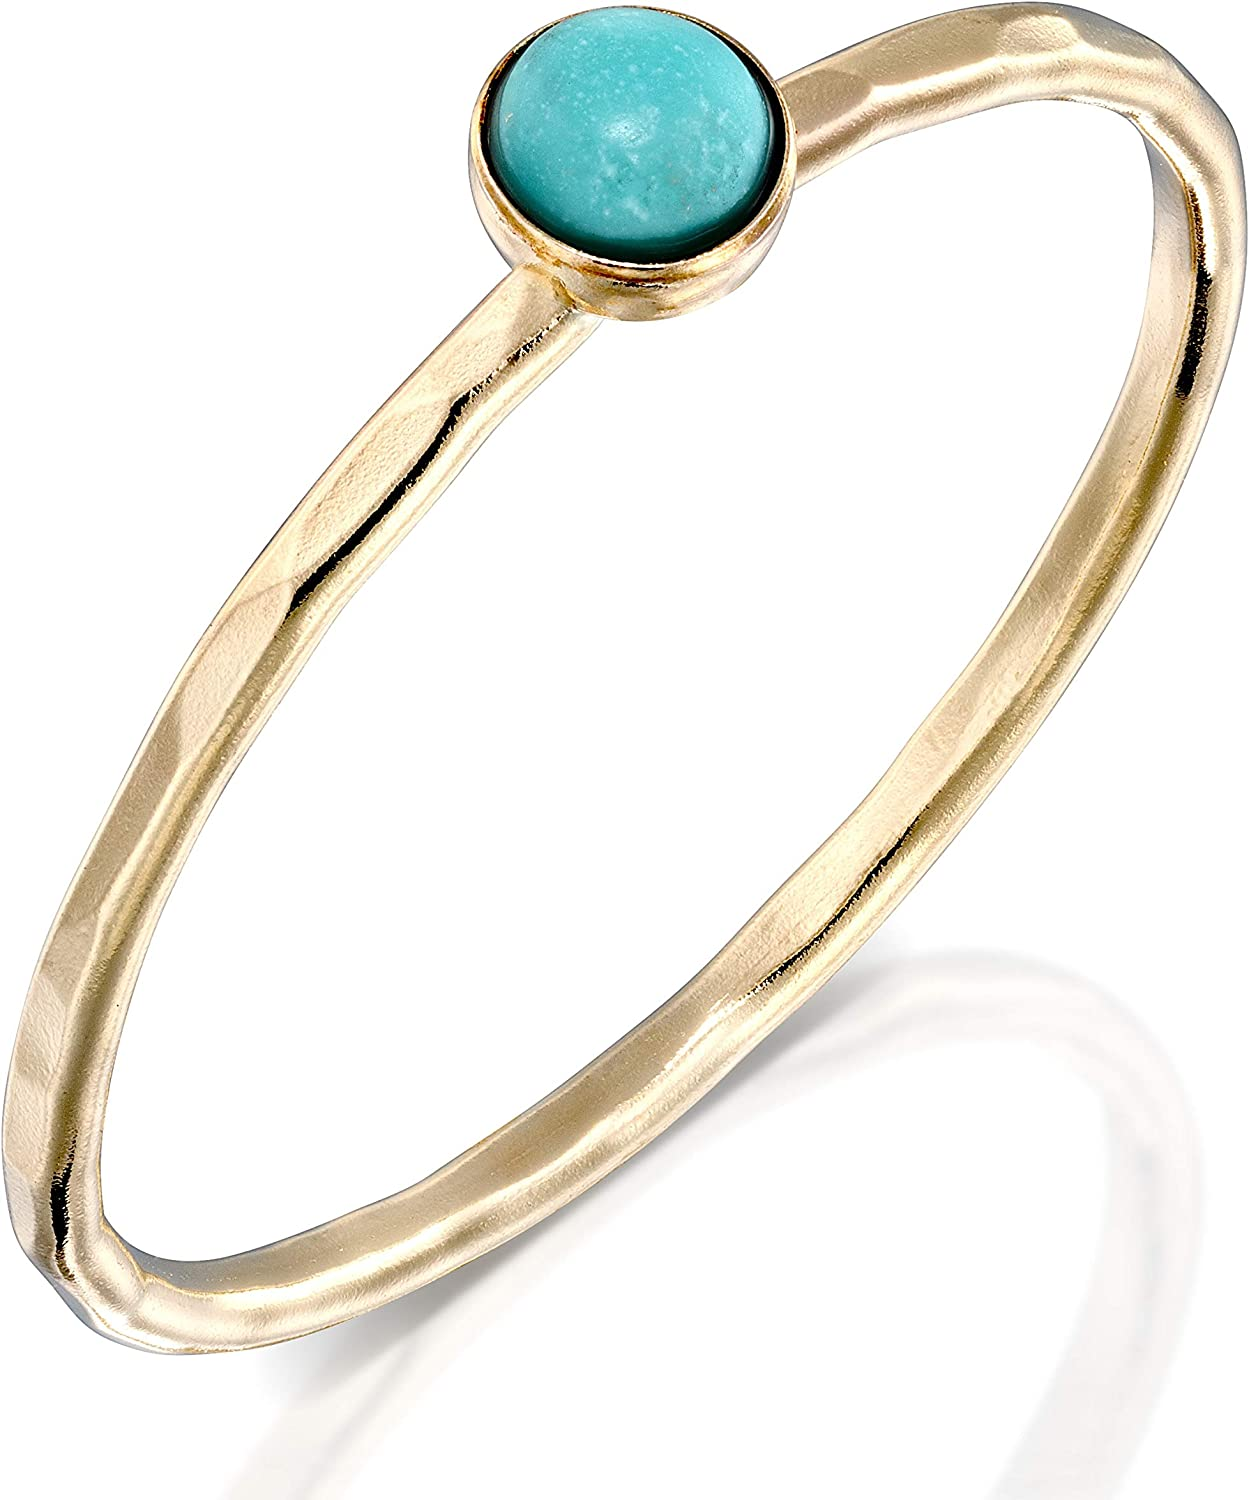 FABIN JEWELRY Handmade Hammered Gold Filled and Your Choice of Stone Stackable Ring